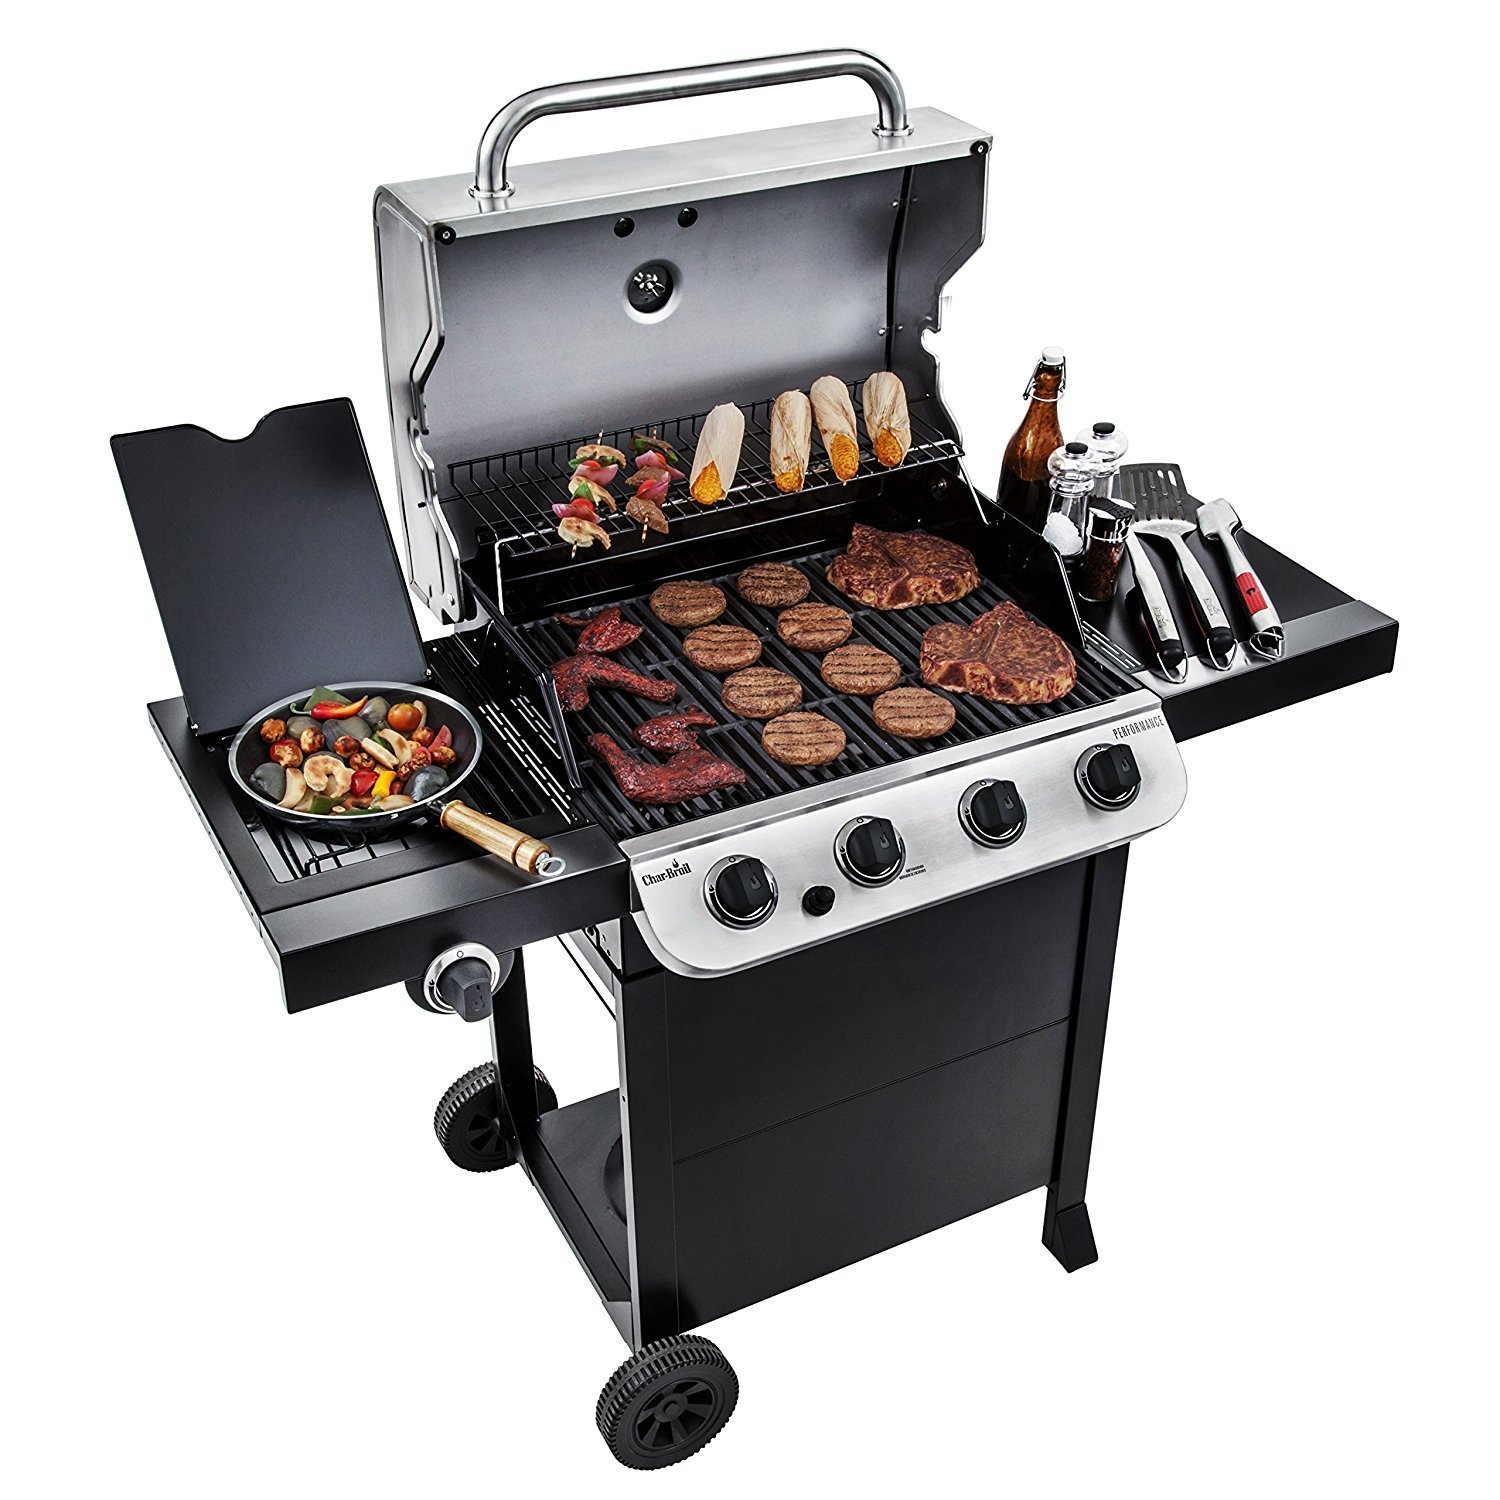 Char-Broil Performance 475 Gas Grill Review